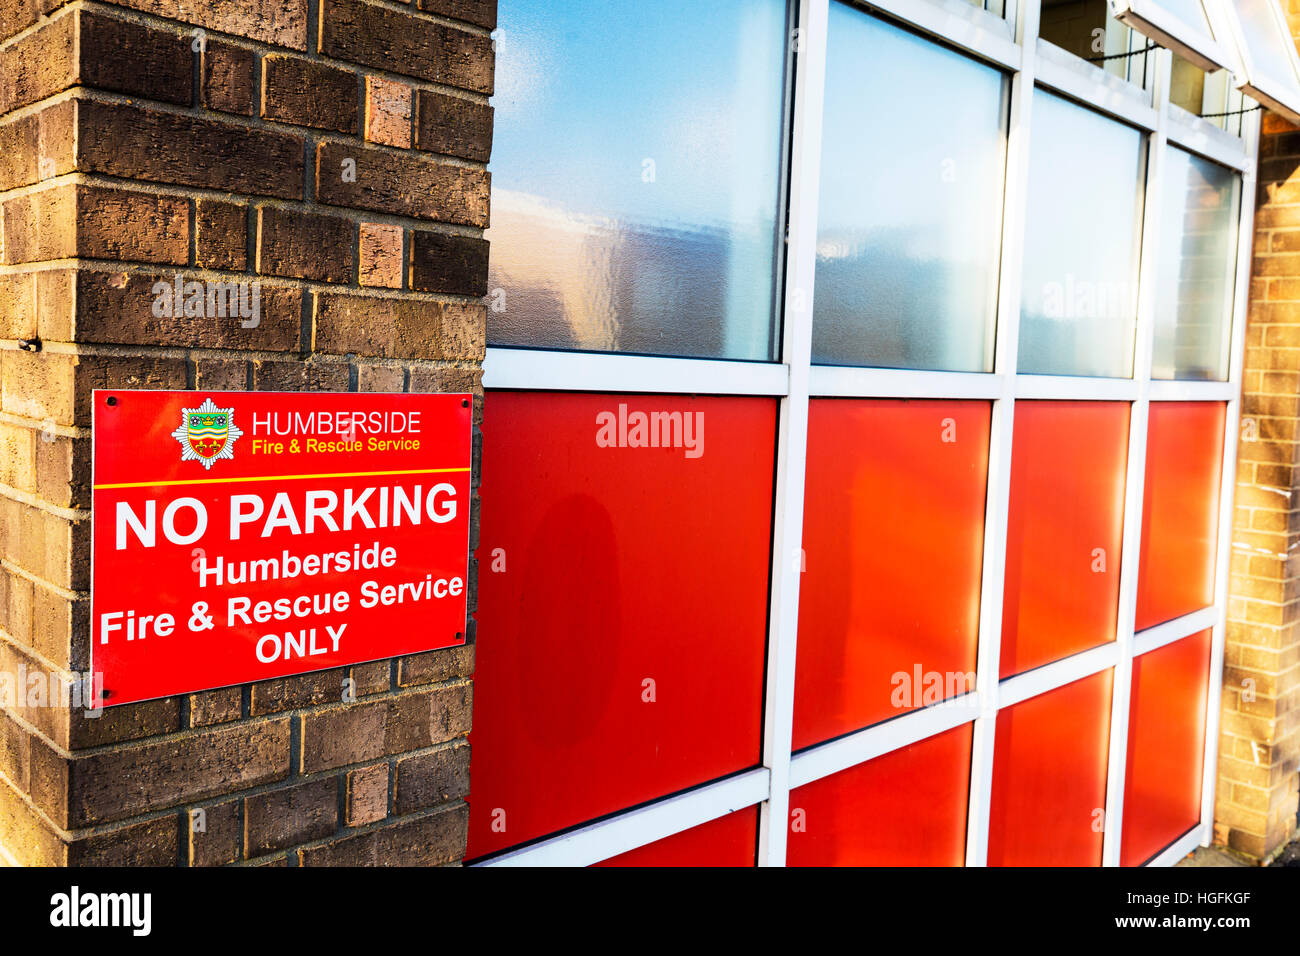 Humberside fire and rescue service fire station no parking sign Scunthorpe Town, Lincolnshire UK England - Stock Image